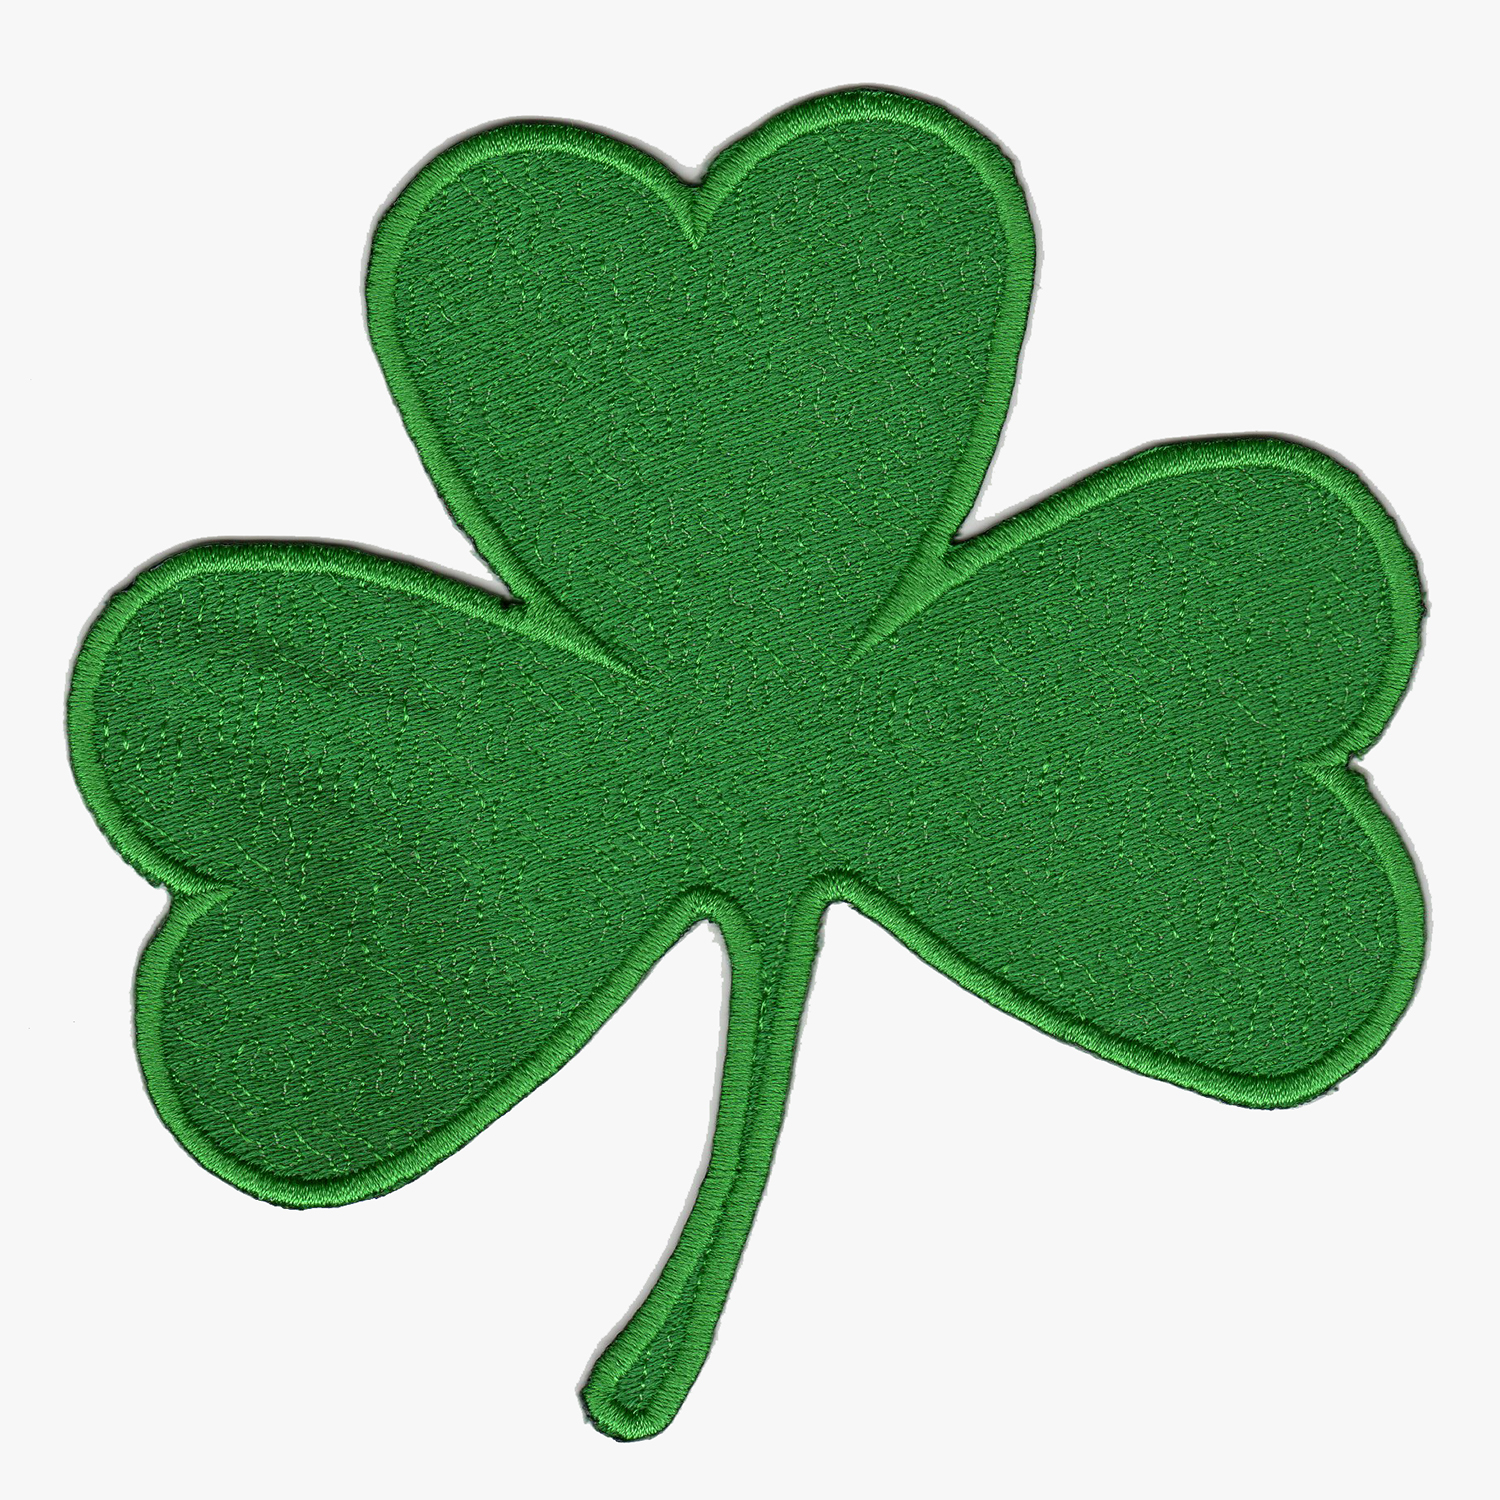 IRISH SHAMROCK GREEN CLOVER